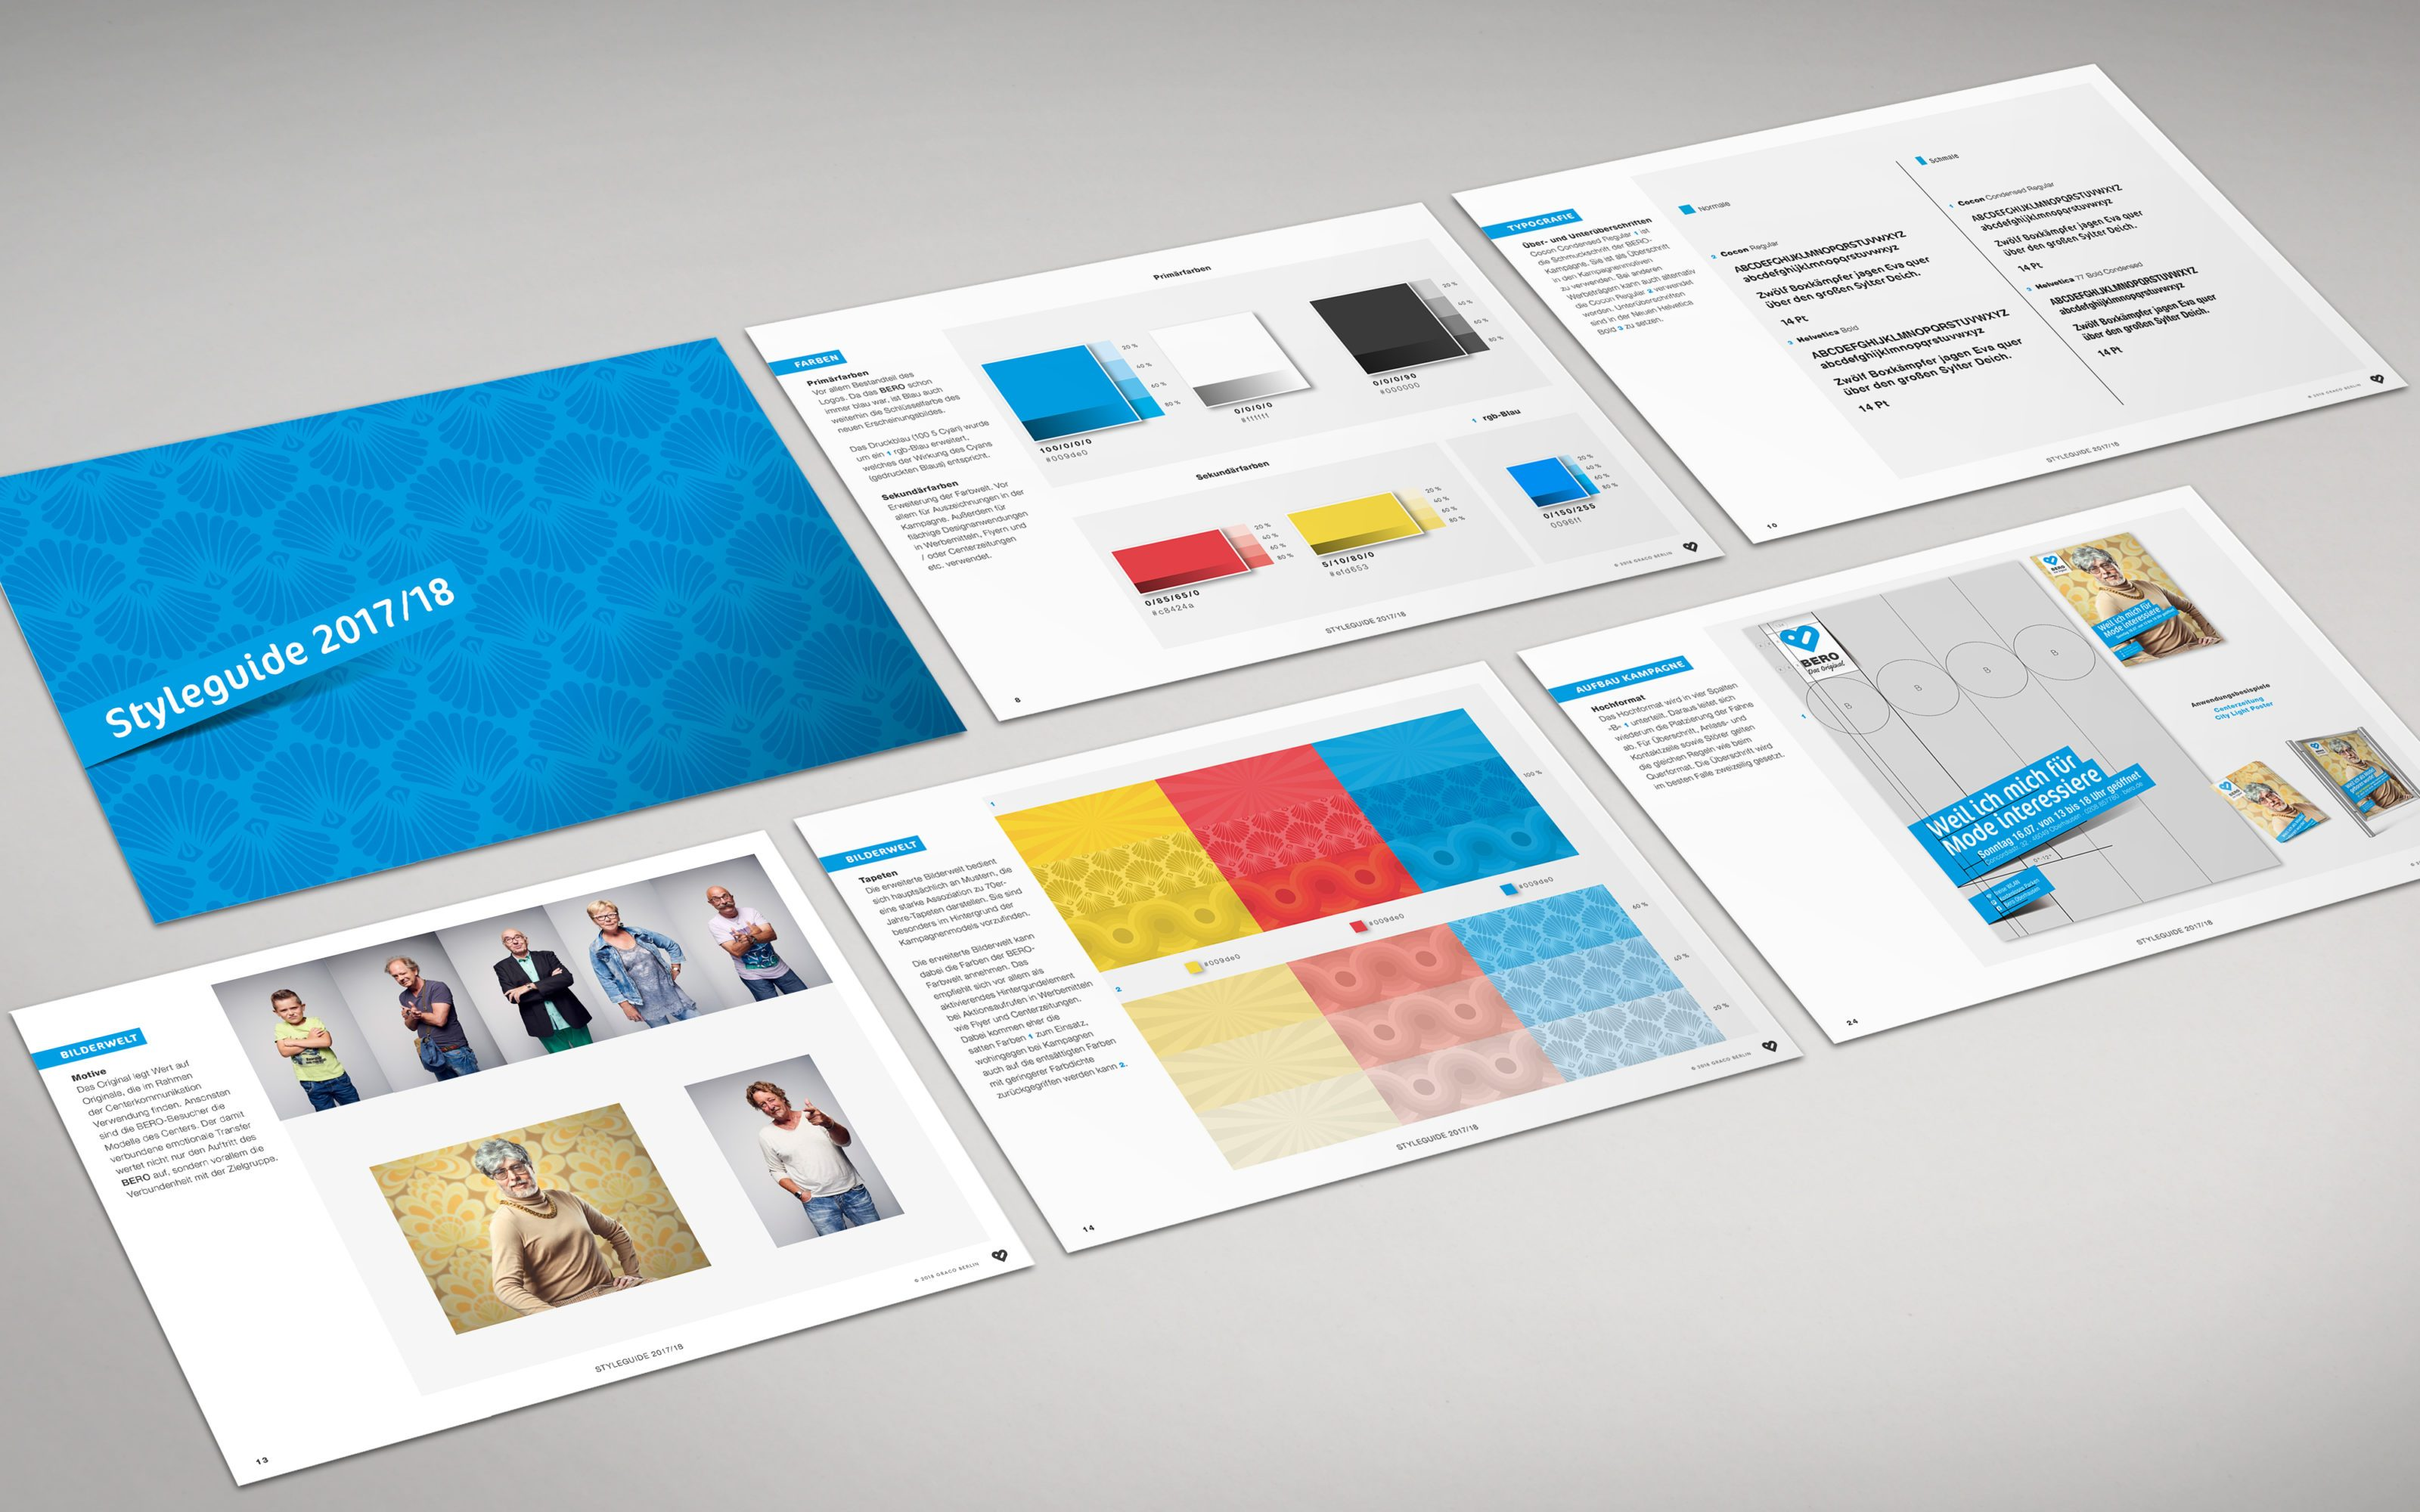 GRACO-Bero-Corporate Design-Manual